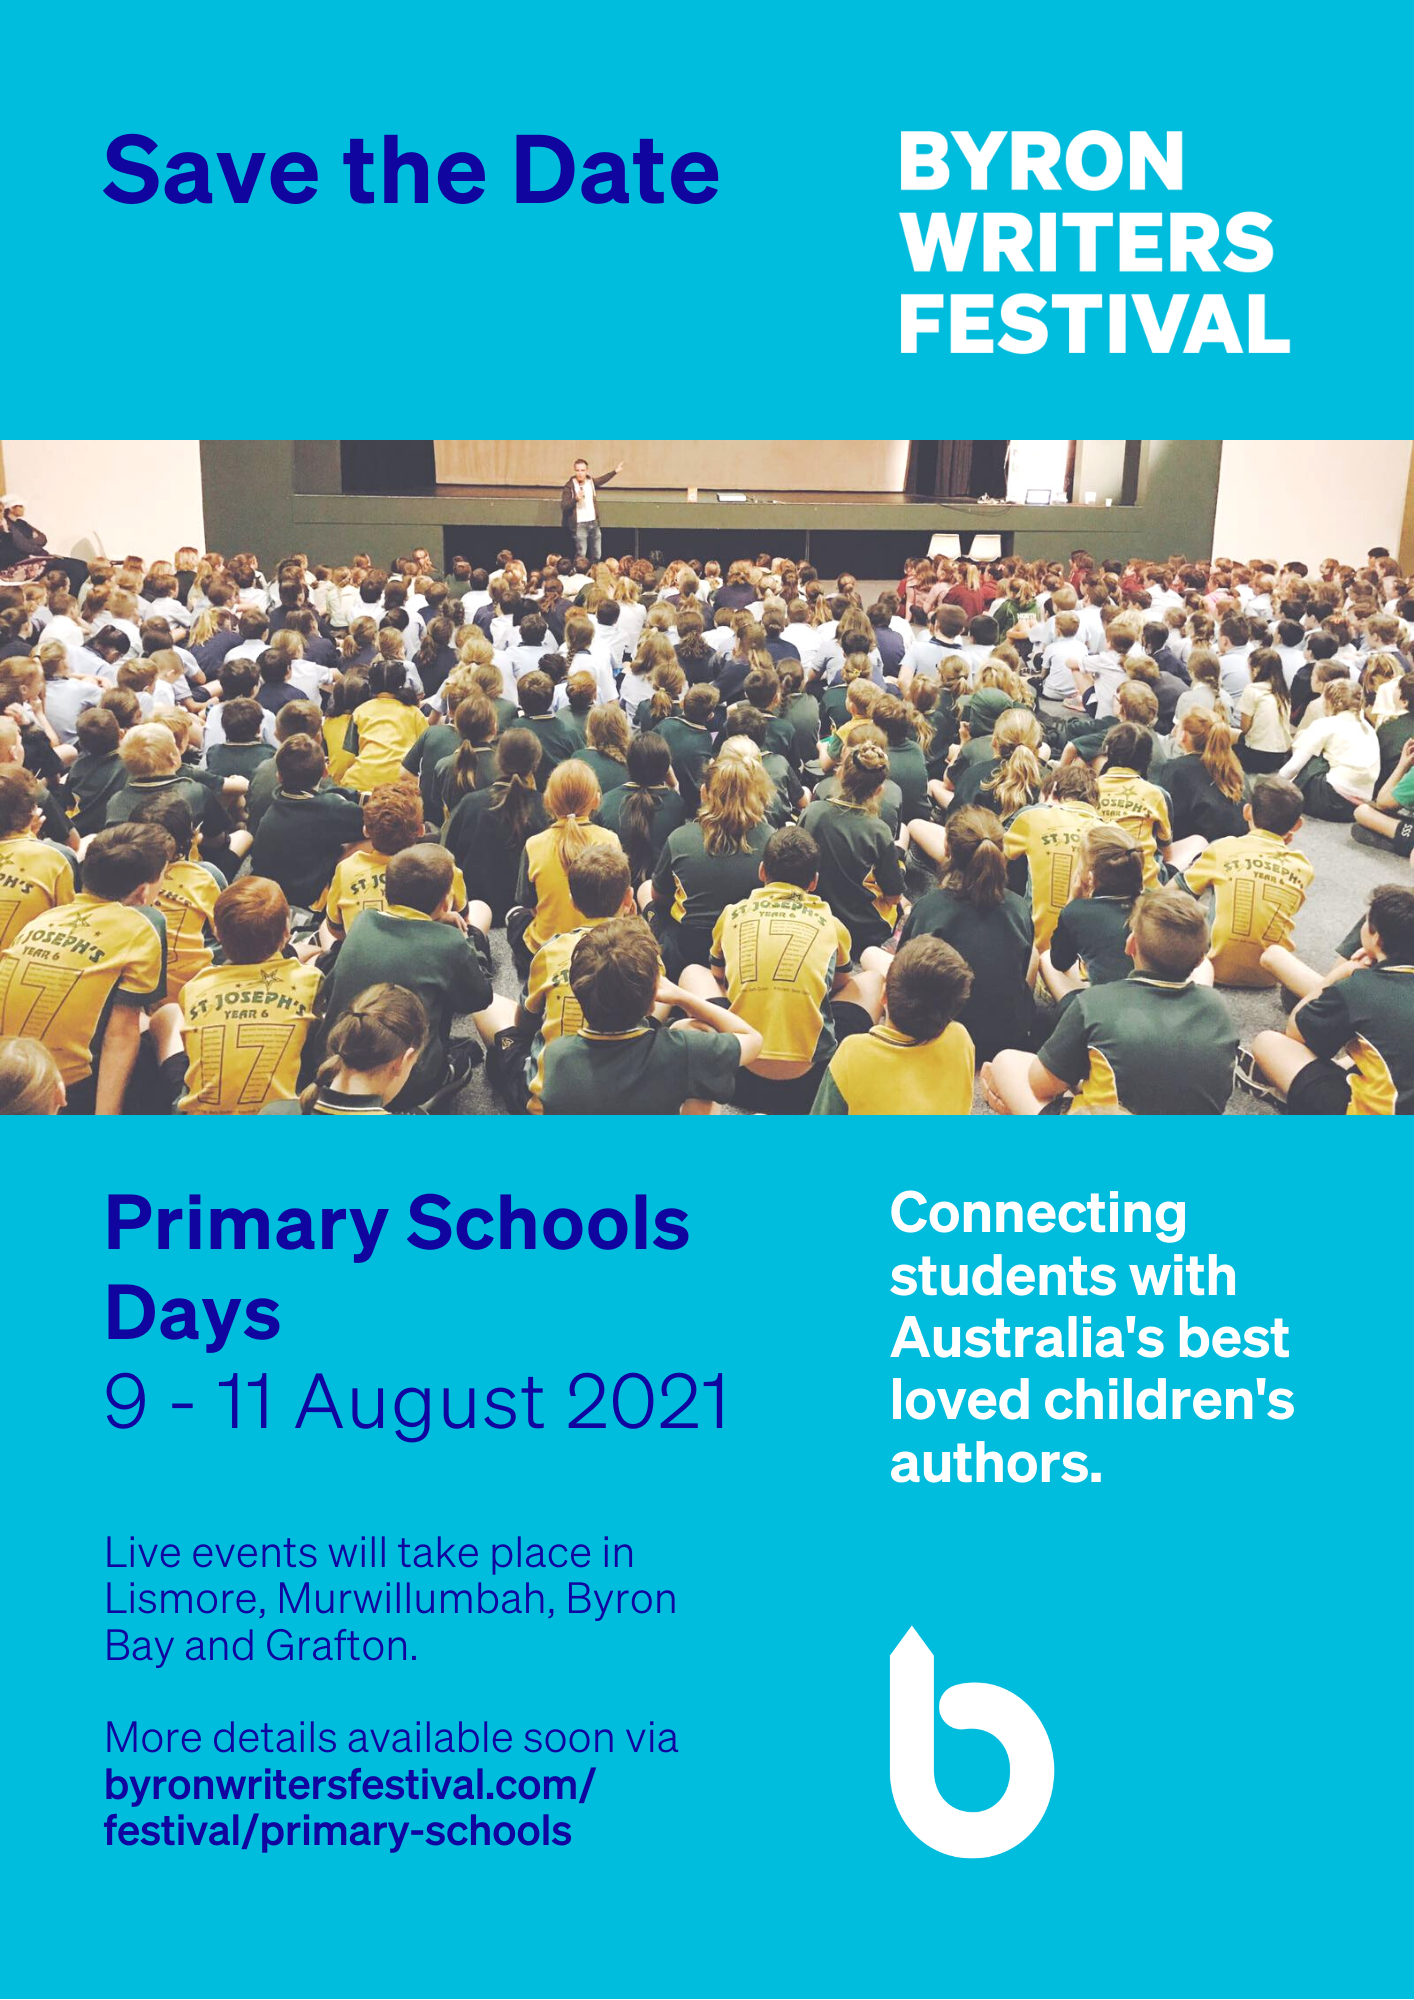 http://byronwritersfestival.com/wp-content/uploads/2021/03/2021-Primary-Schools-Save-the-Date.png